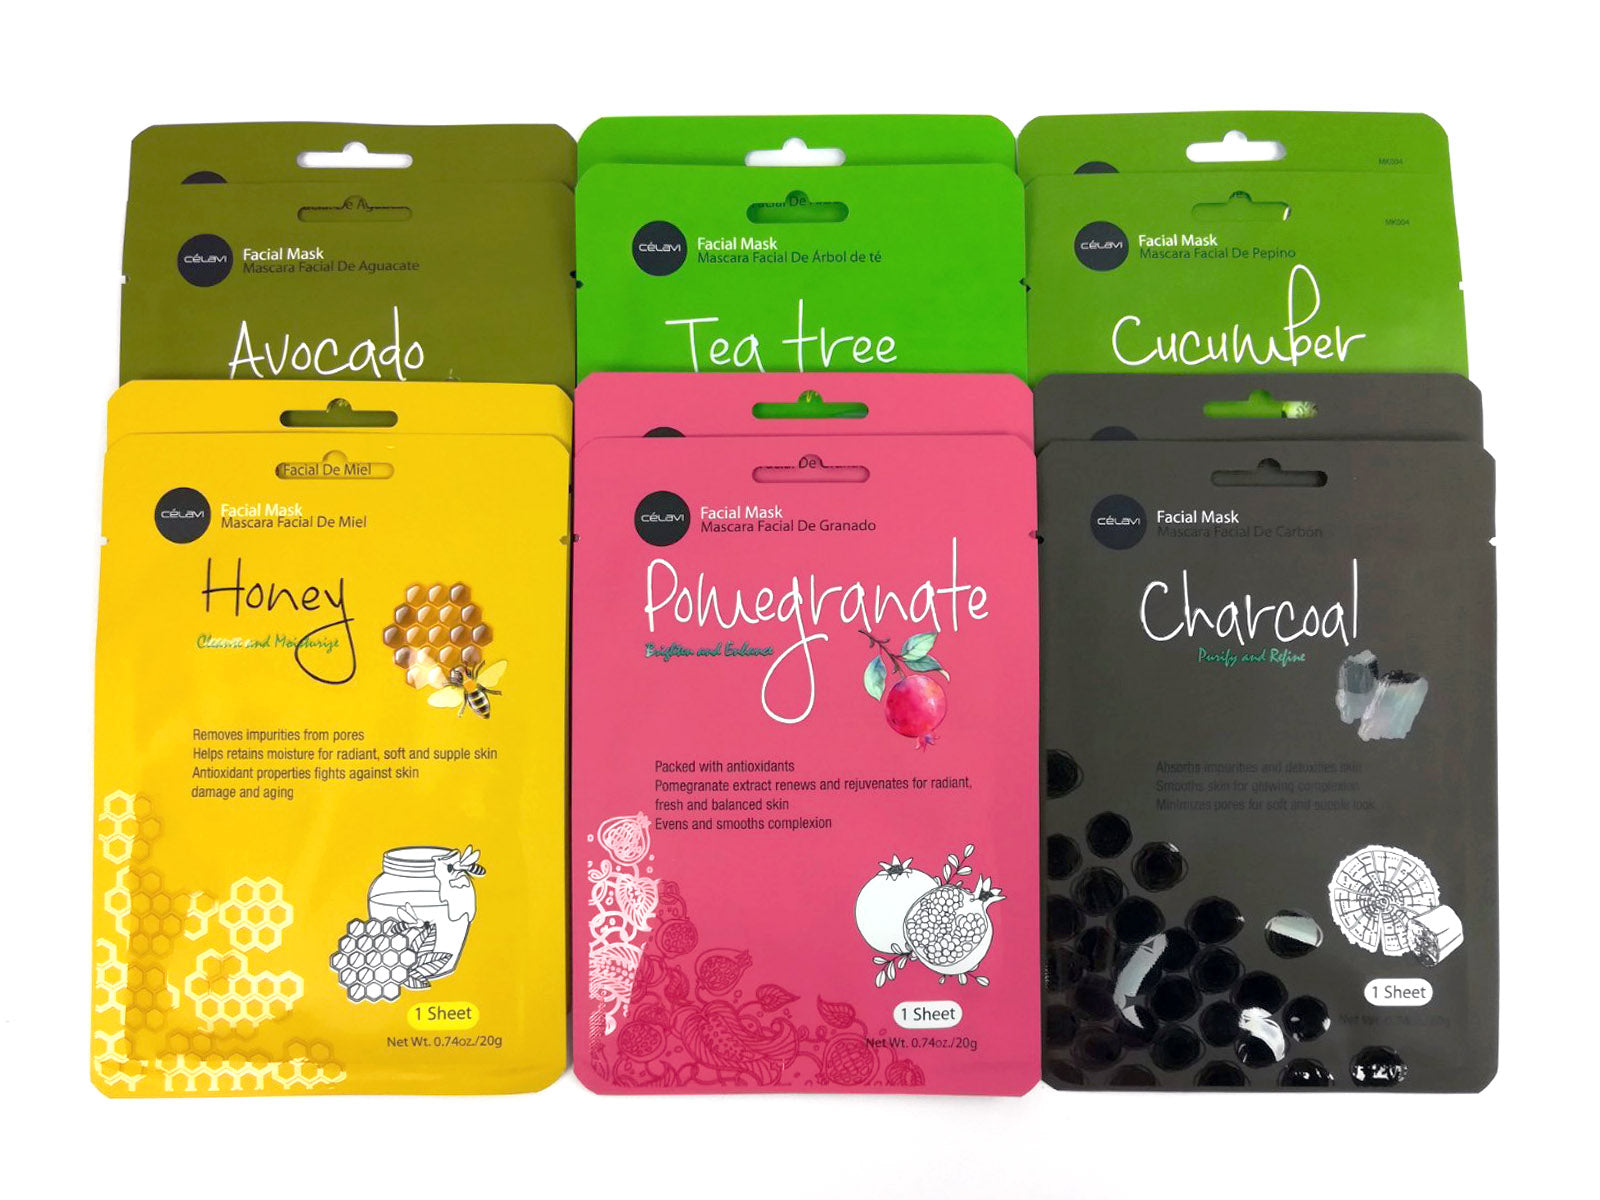 Essence Facial Mask Paper Sheet Moisturizing Skin Care